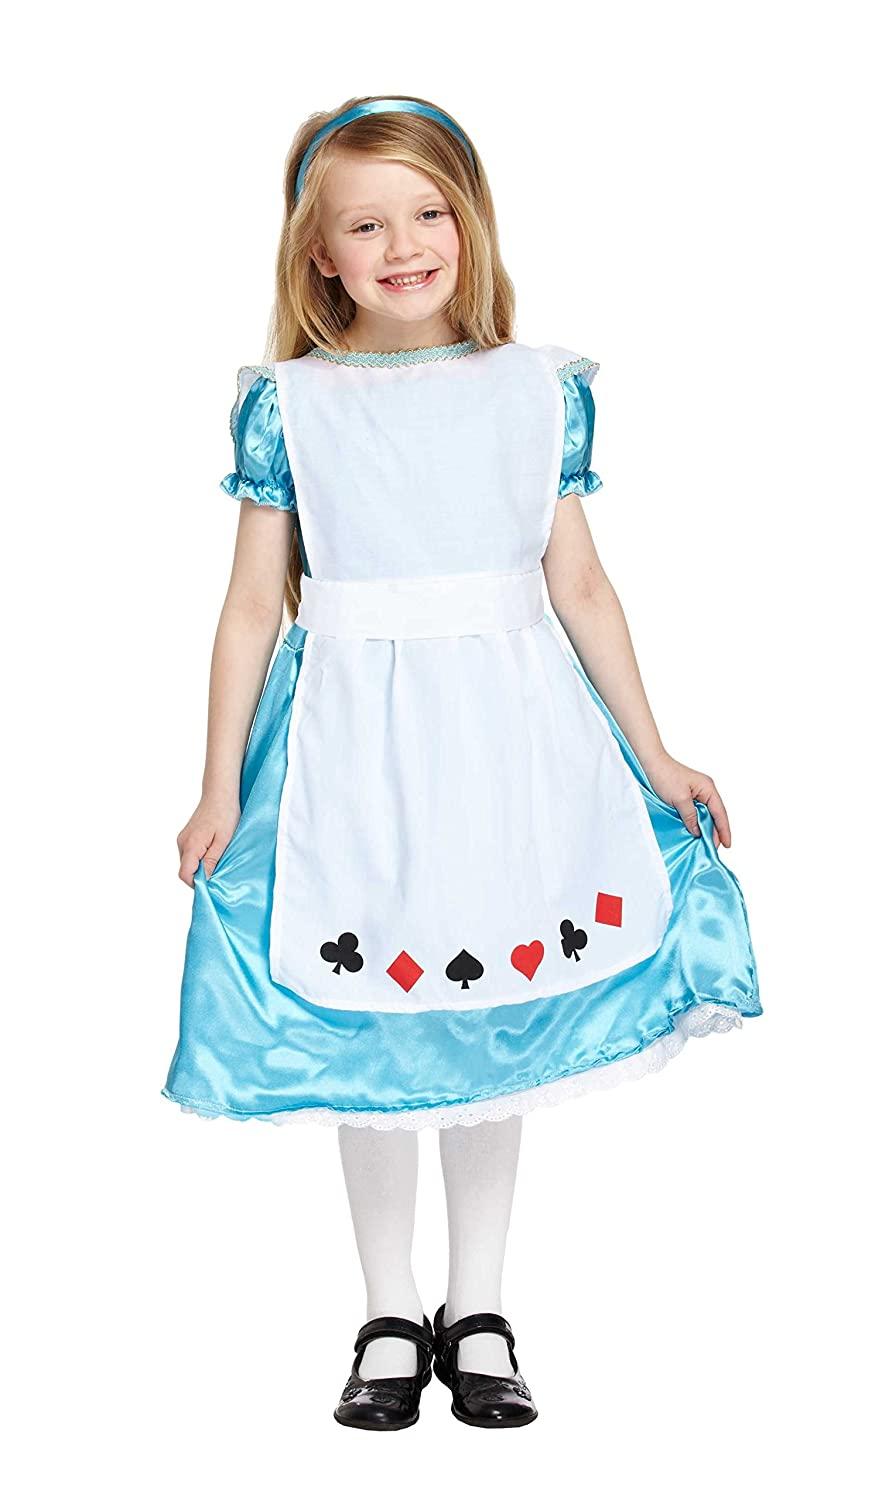 Amazon.com ToyMarket Child Alice Fancy Dress Costume Girls